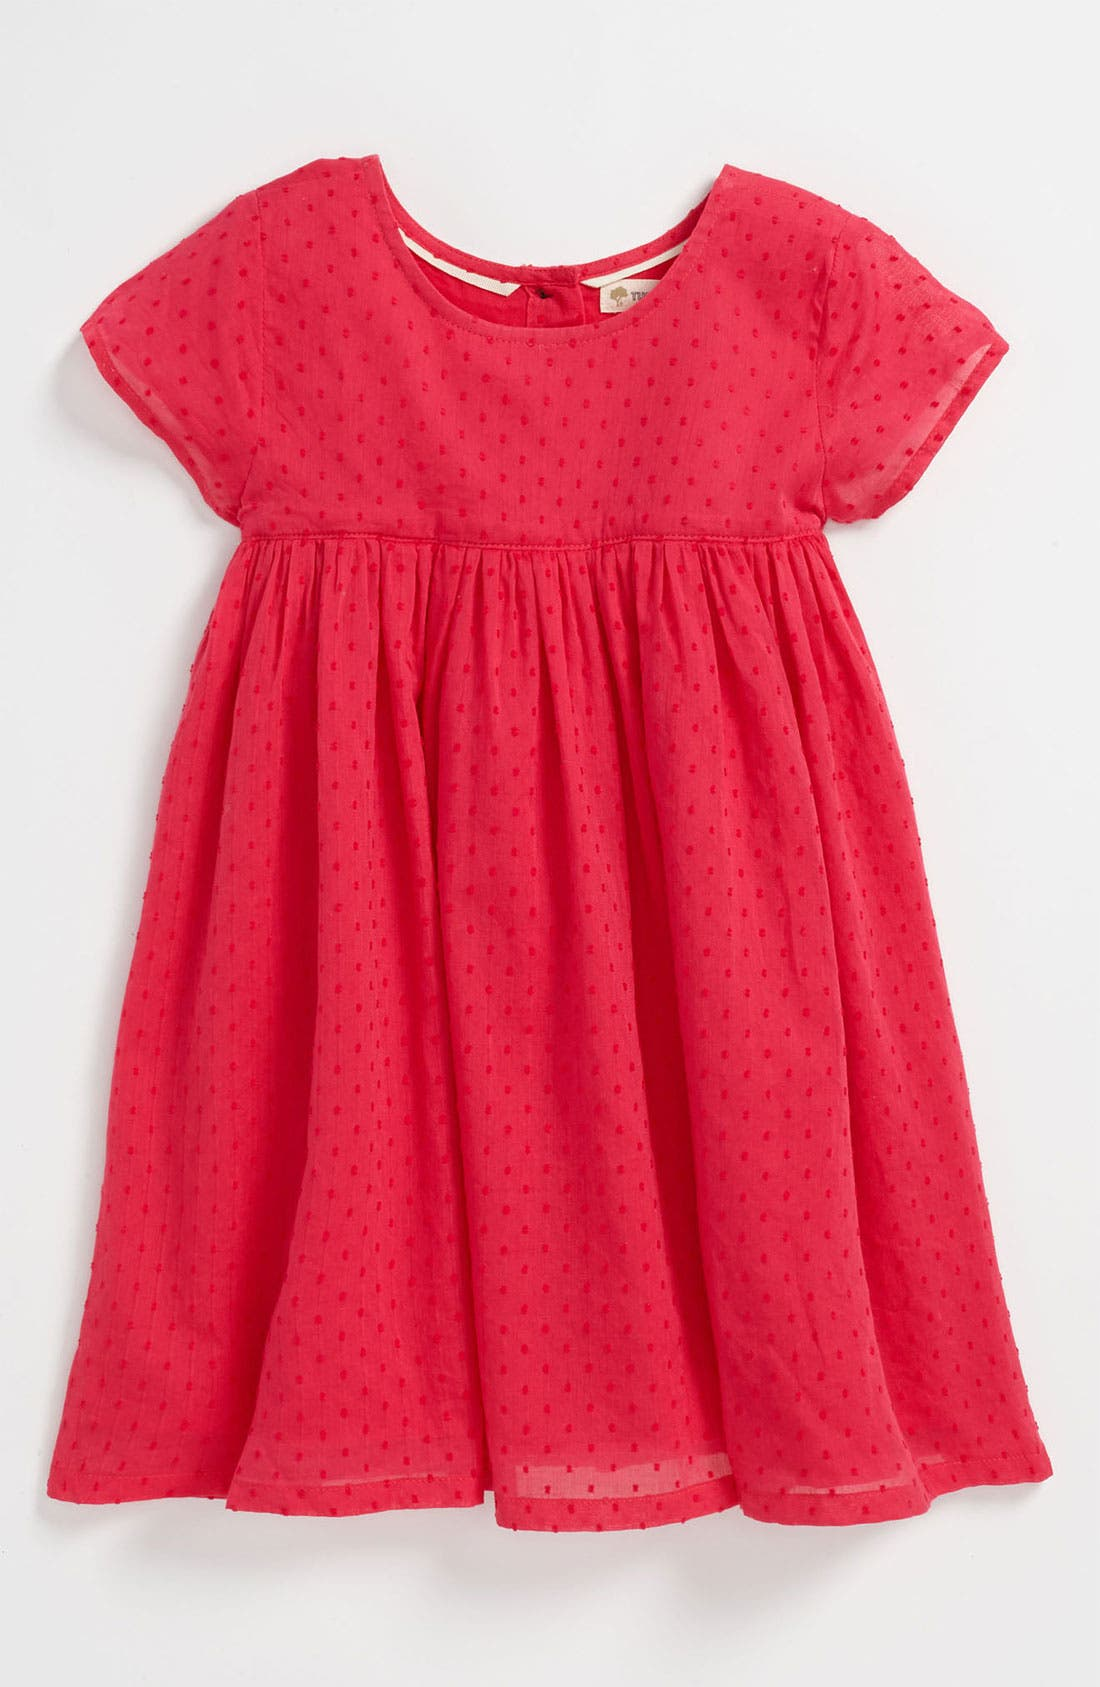 Alternate Image 1 Selected - Tucker + Tate 'Iris' Dress (Toddler)